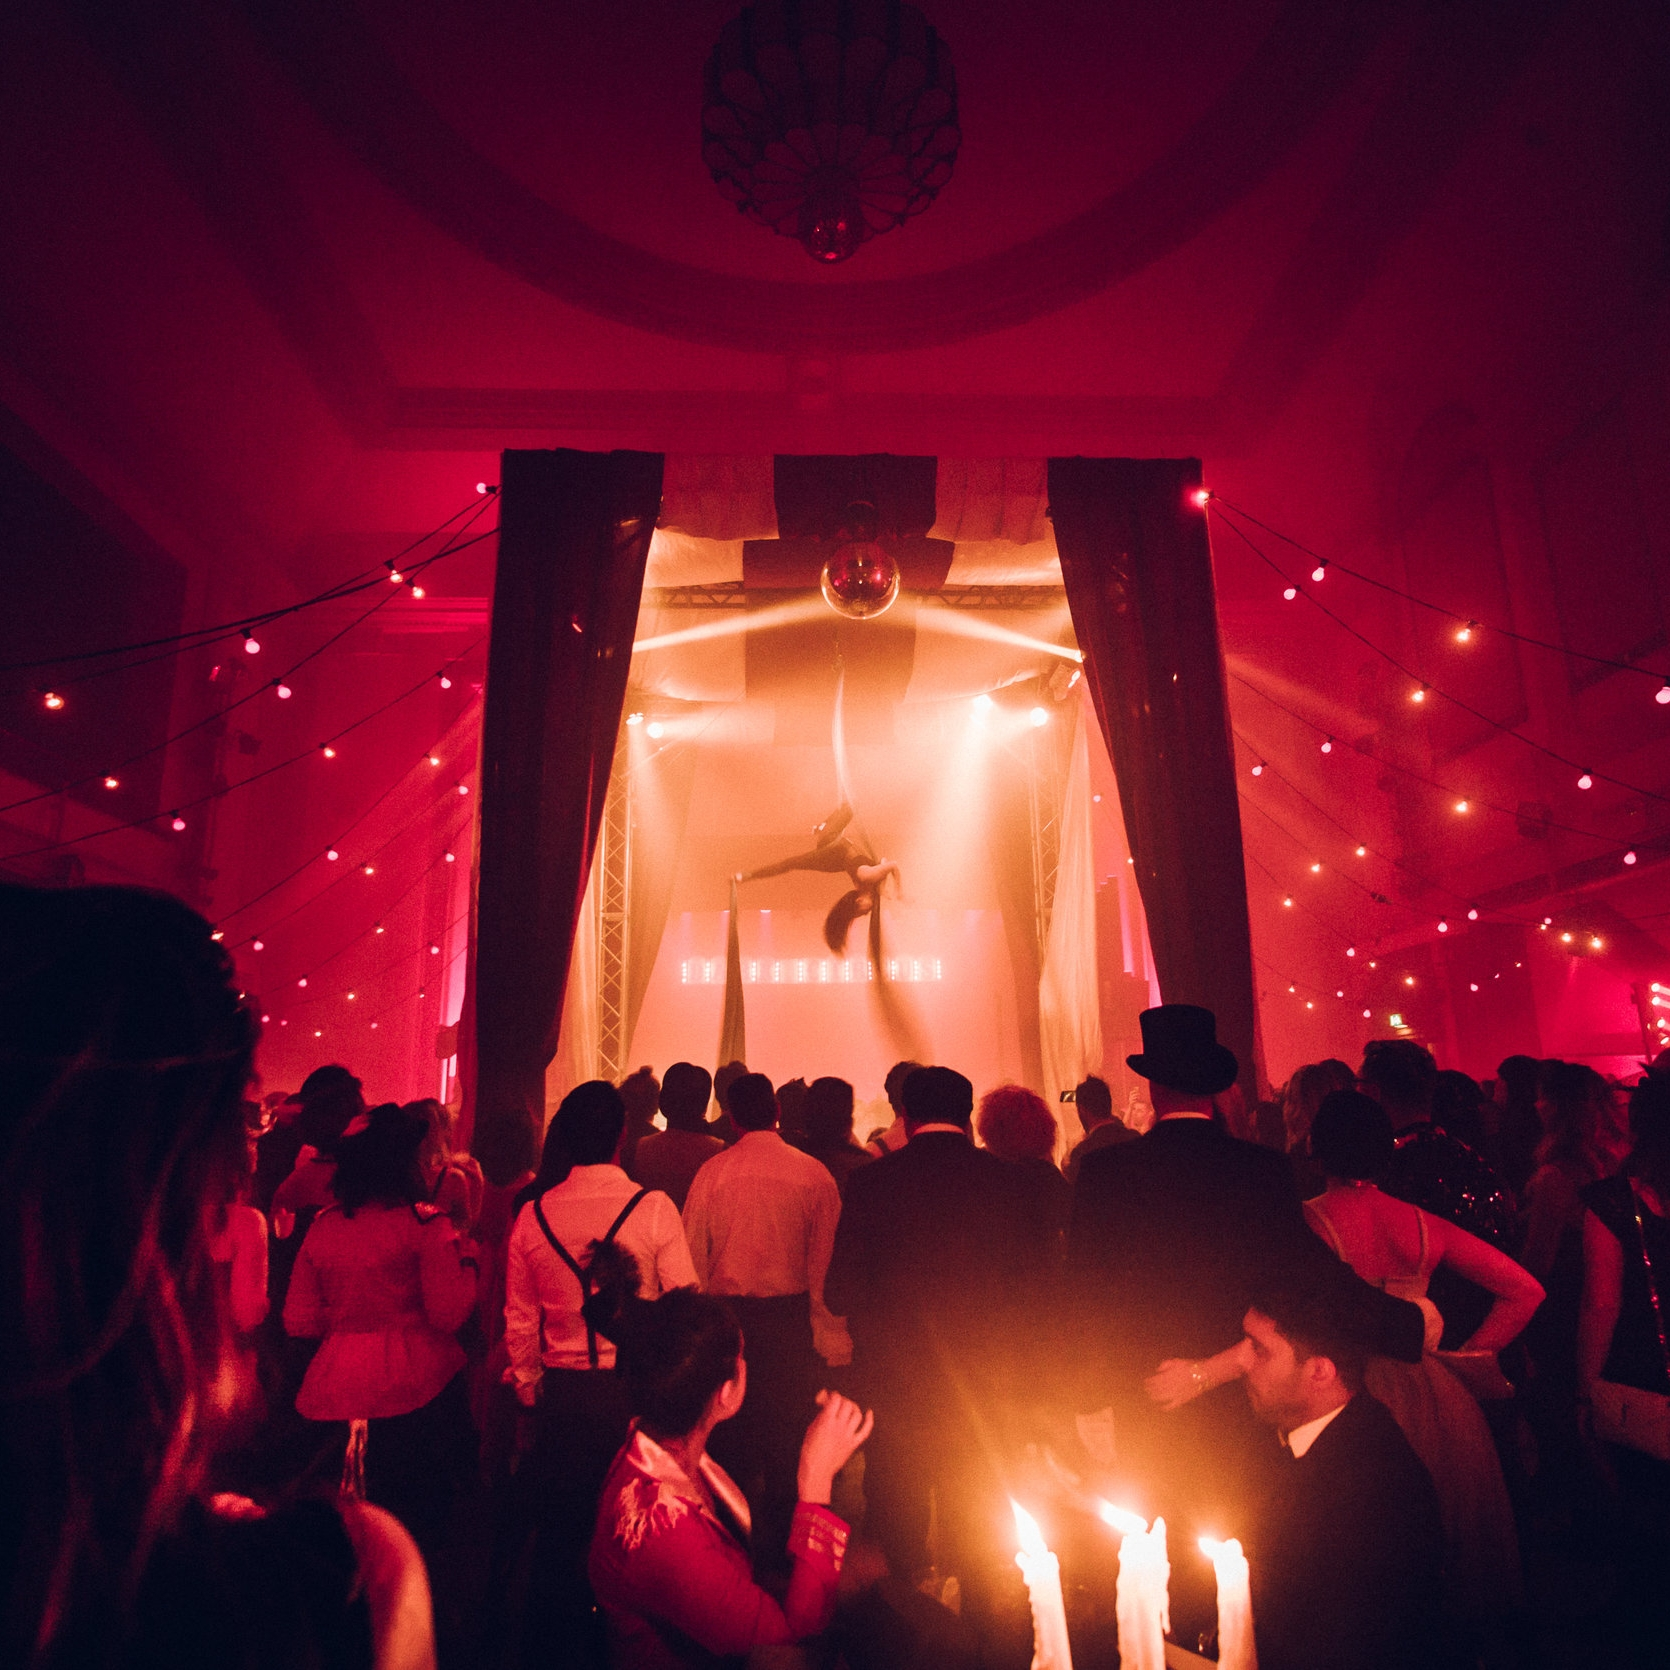 Dark Circus Party - Halloween Special - Saturday 26th October 2019BOOK HERE